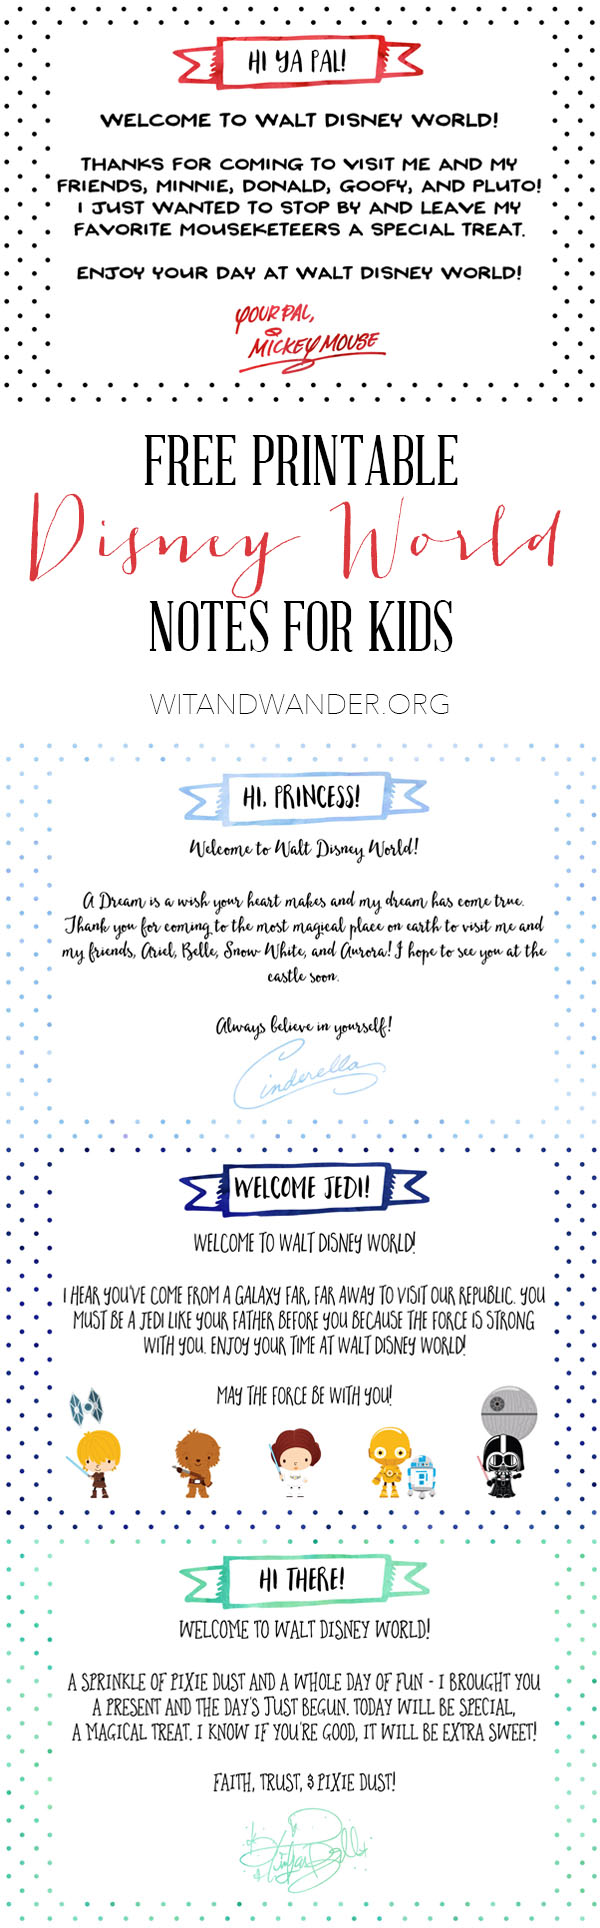 Free Printable Notes for Disney World Vacation | Wit & Wander Pinterest